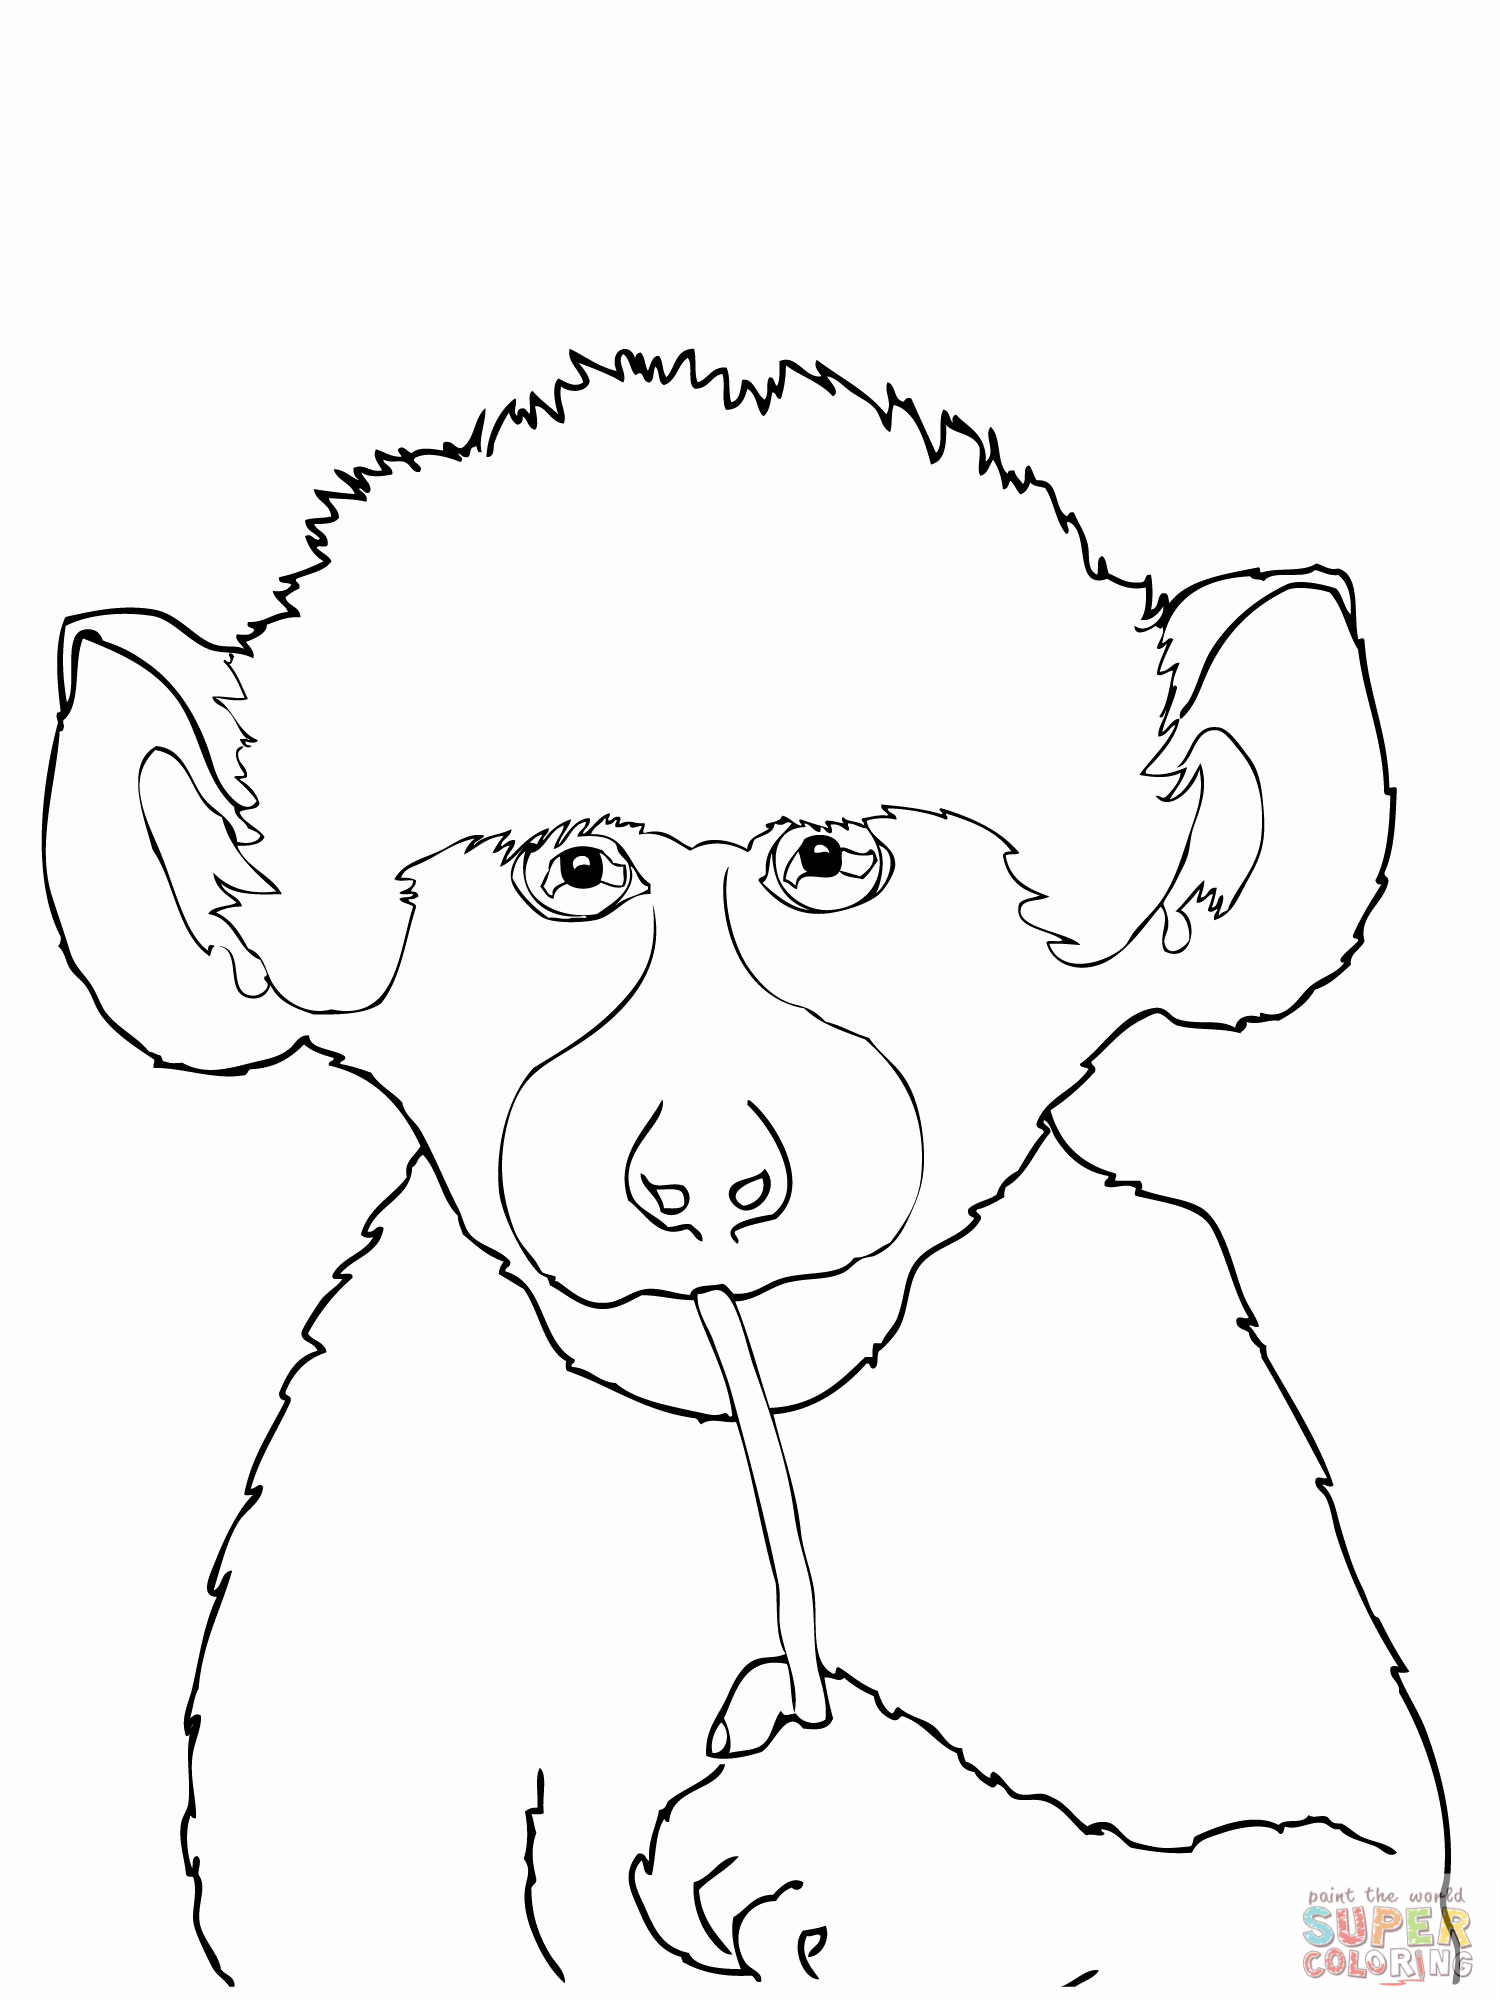 Baboon coloring #16, Download drawings